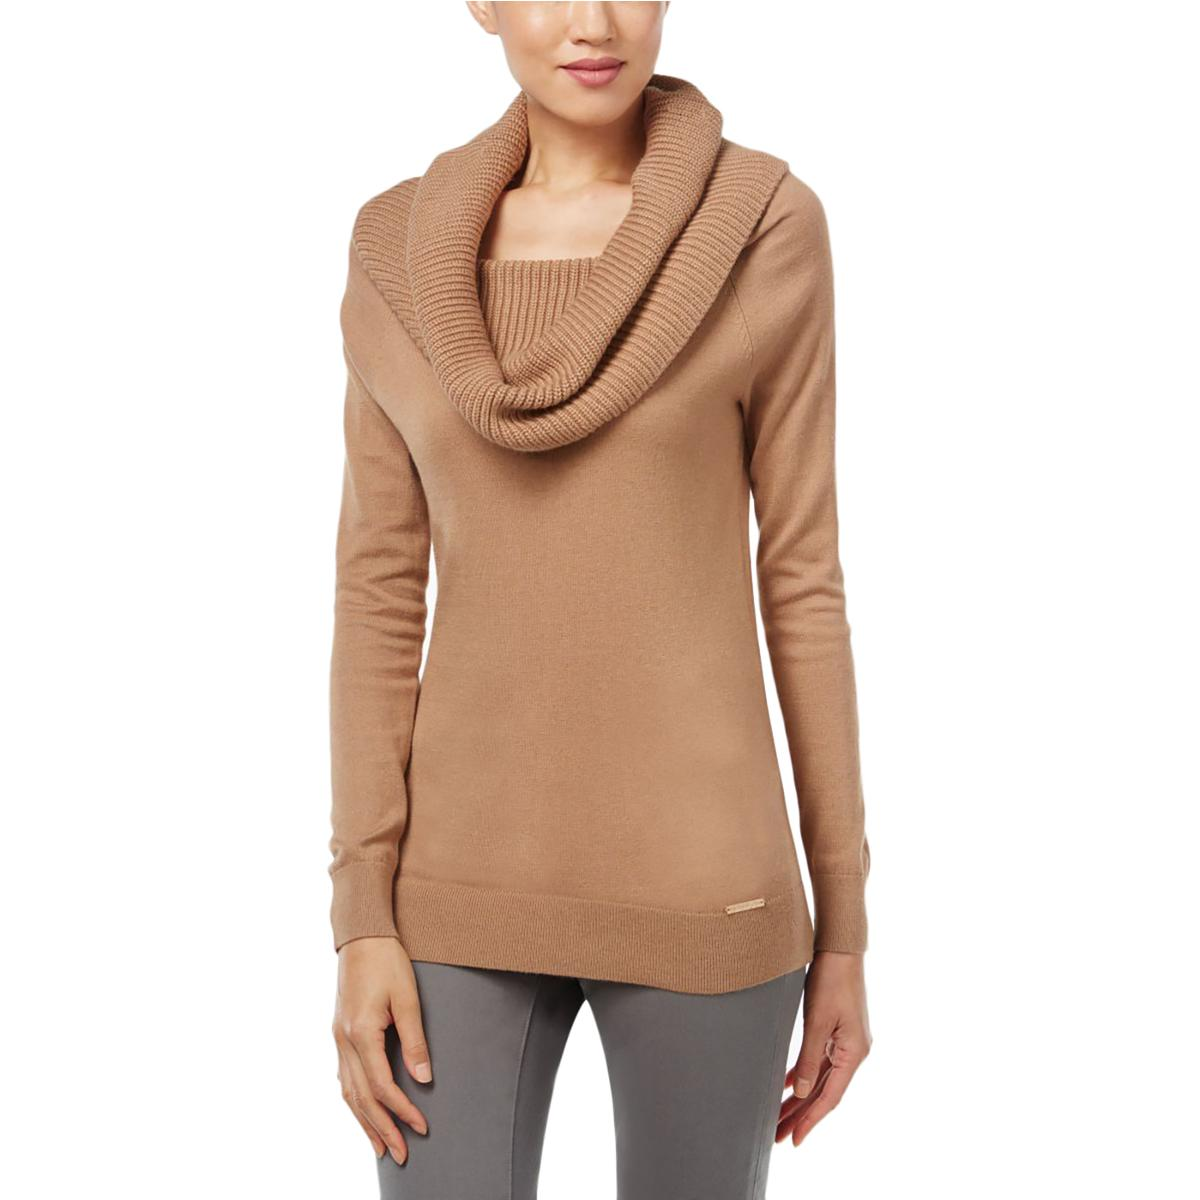 Michael Kors 0313 Size Large L Womens Camel Ribbed Cowl Neck ...